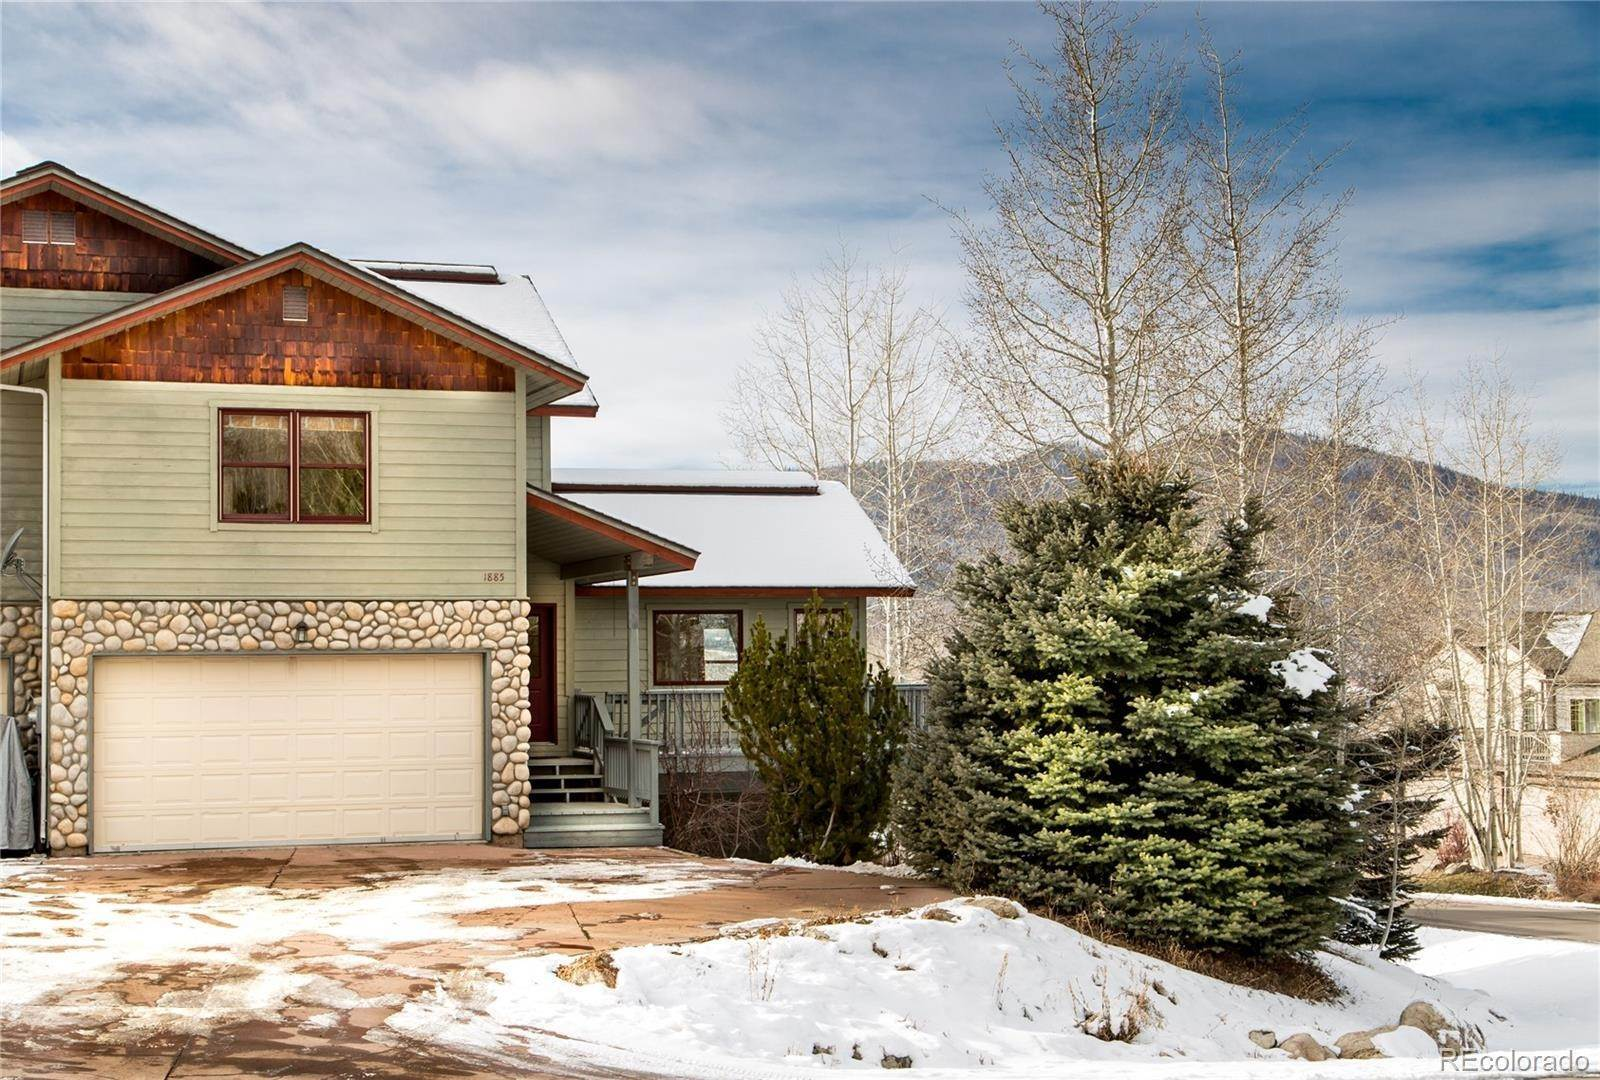 28. Multi Family at Steamboat Springs, Colorado United States